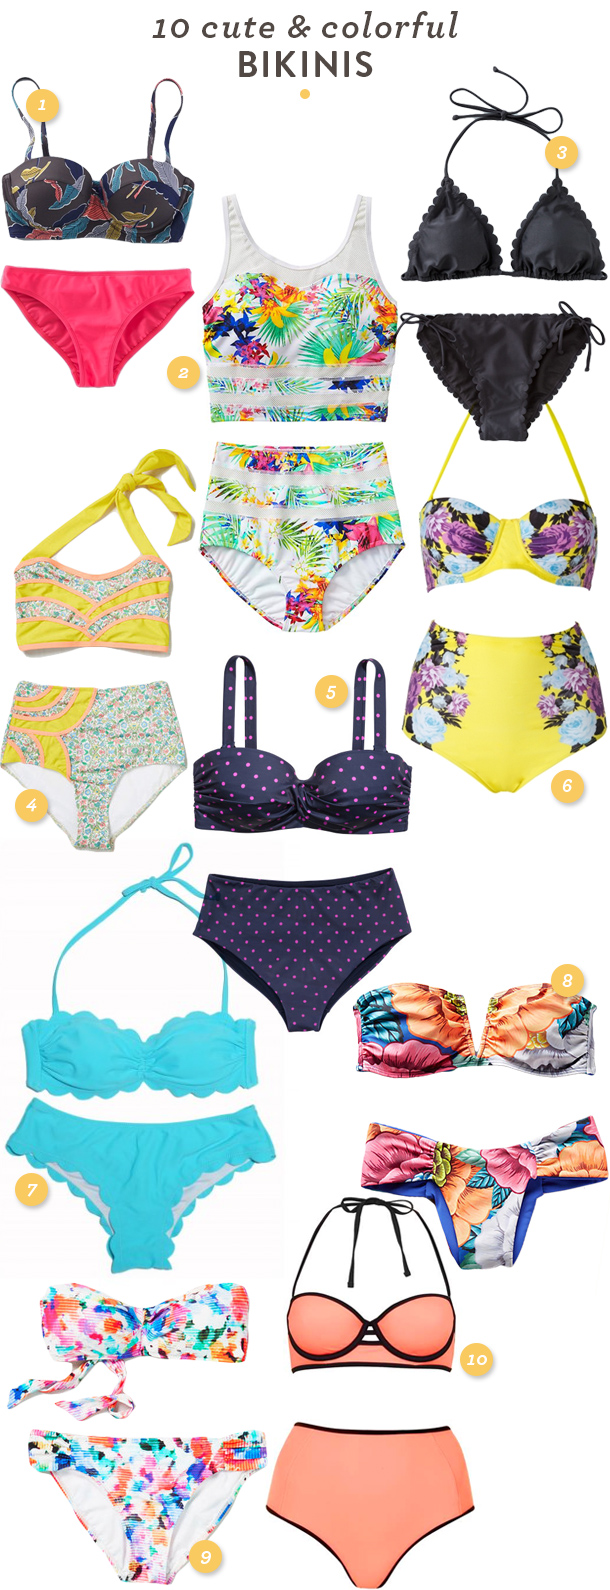 10 cute and colorful bikini swimsuits for all styles and body types